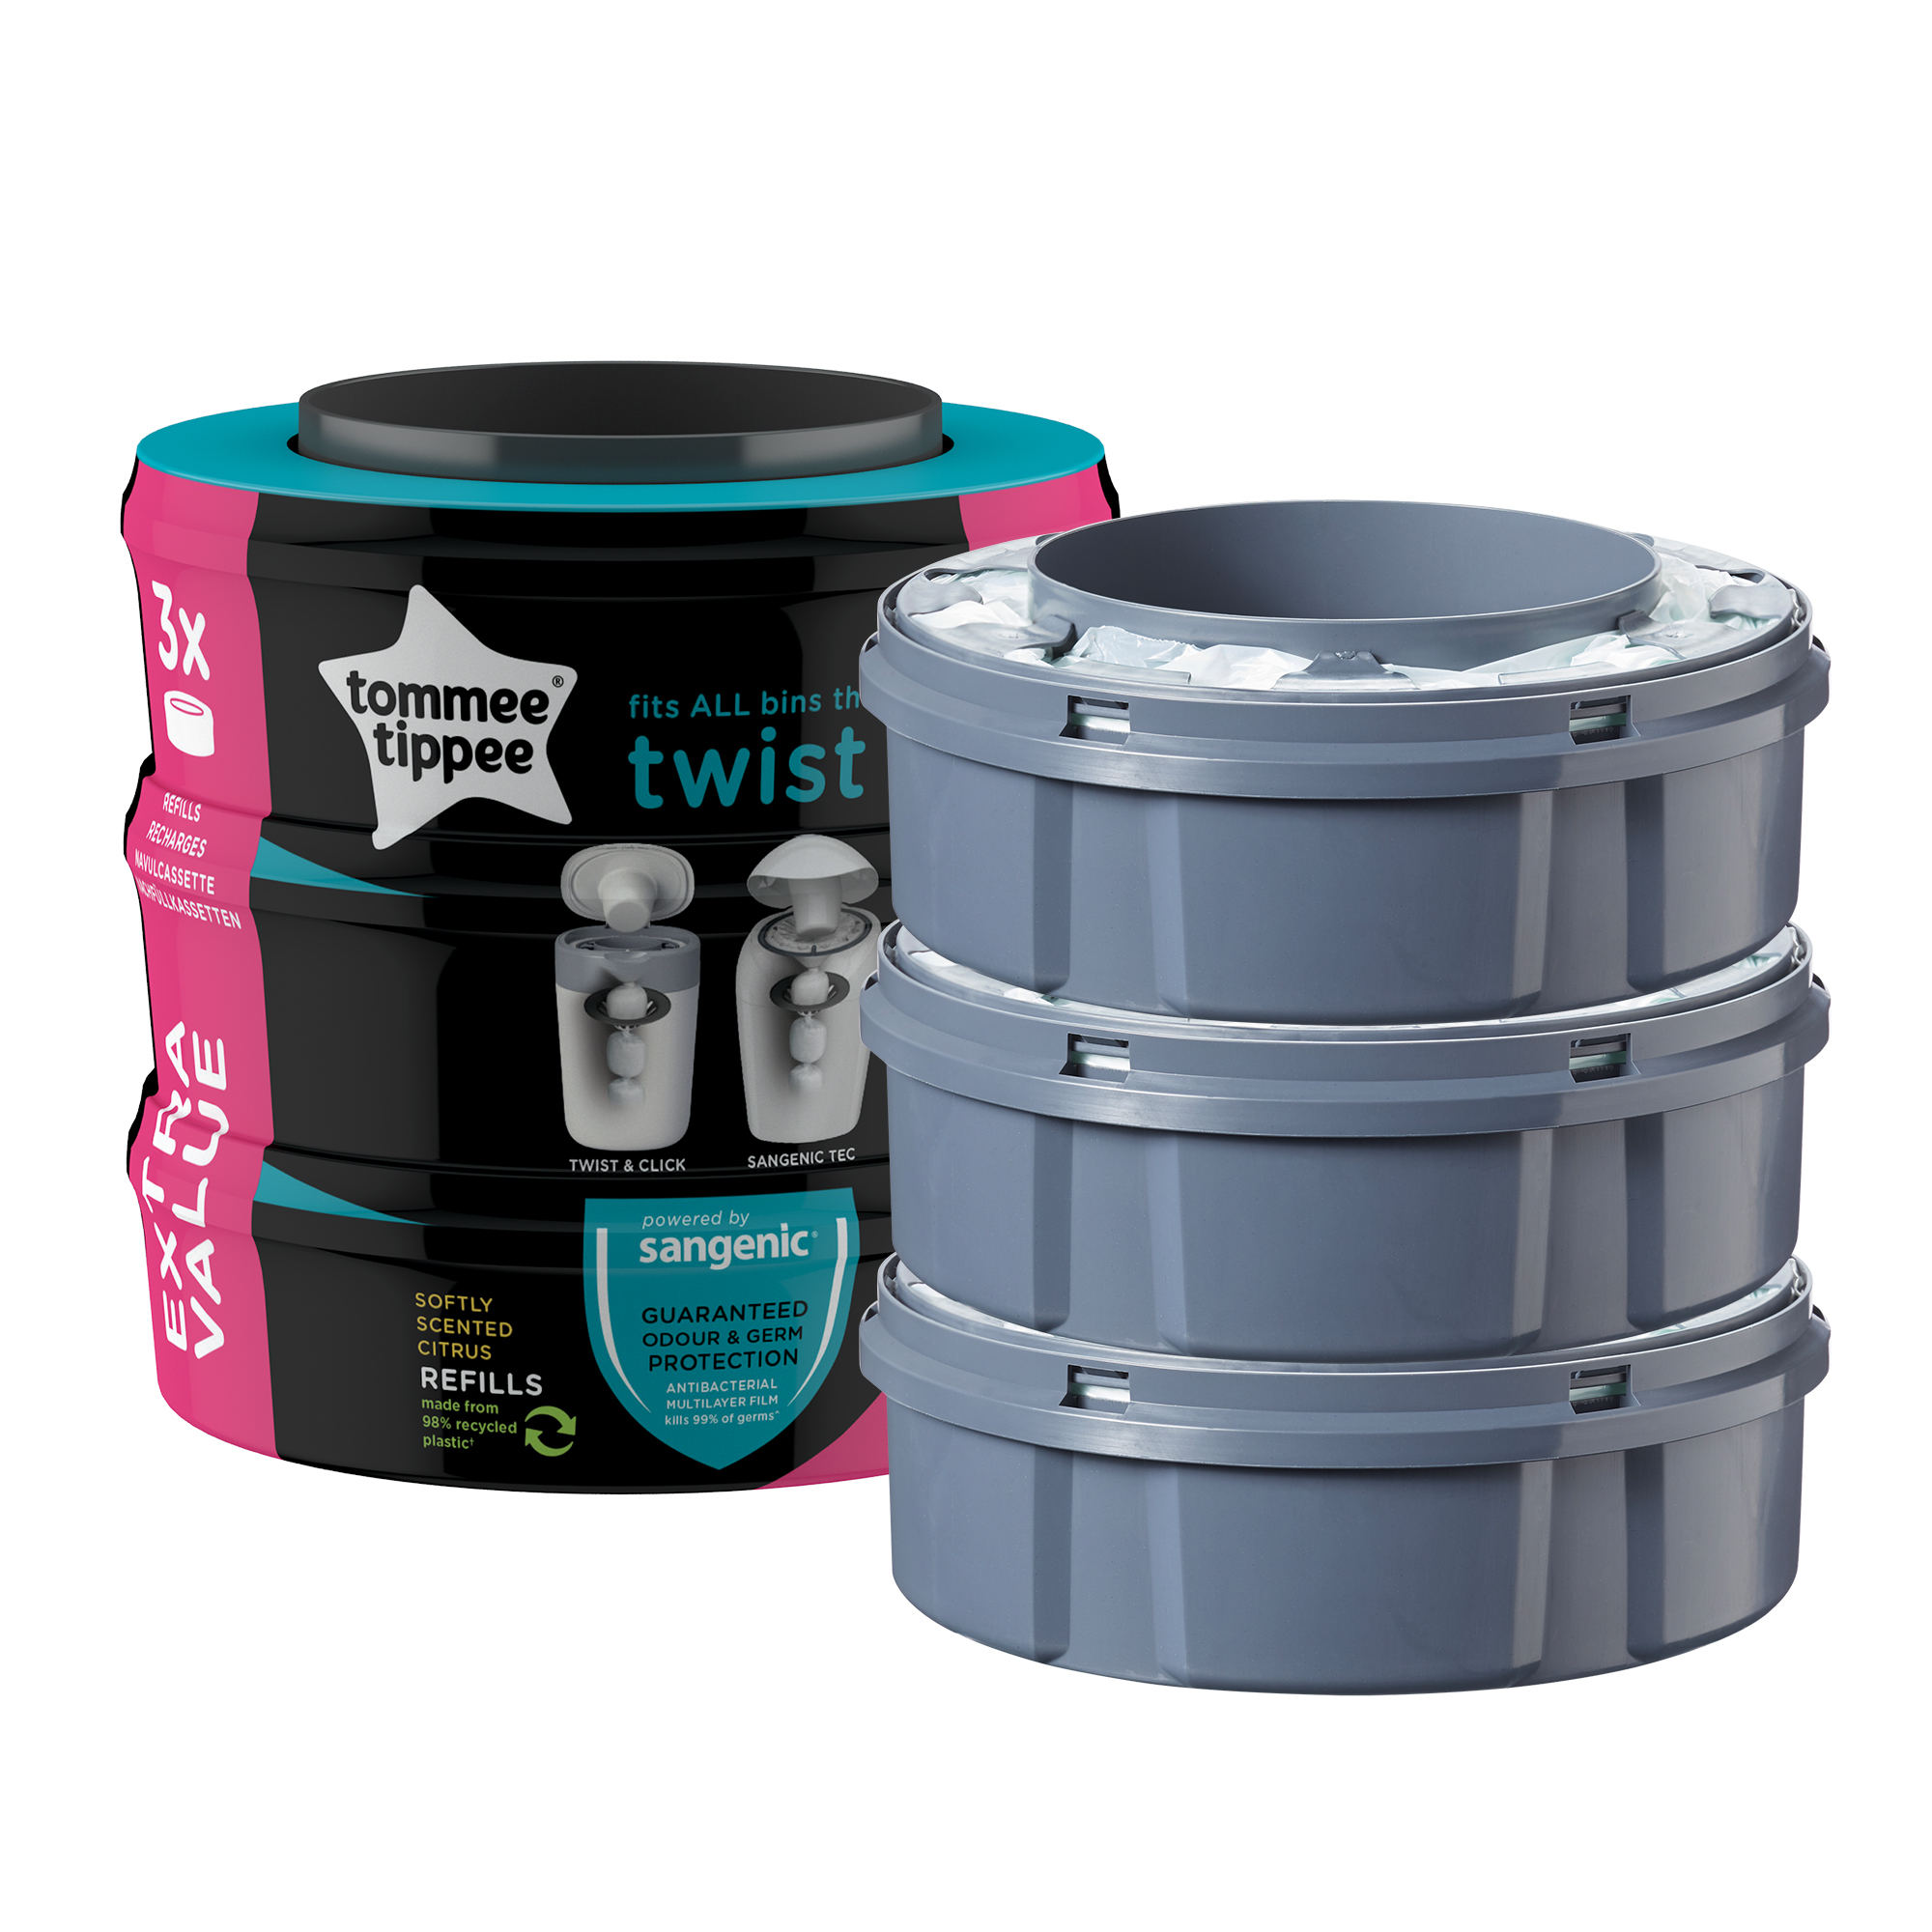 Rezerve Twist and Click, Tommee Tippee, 3 buc